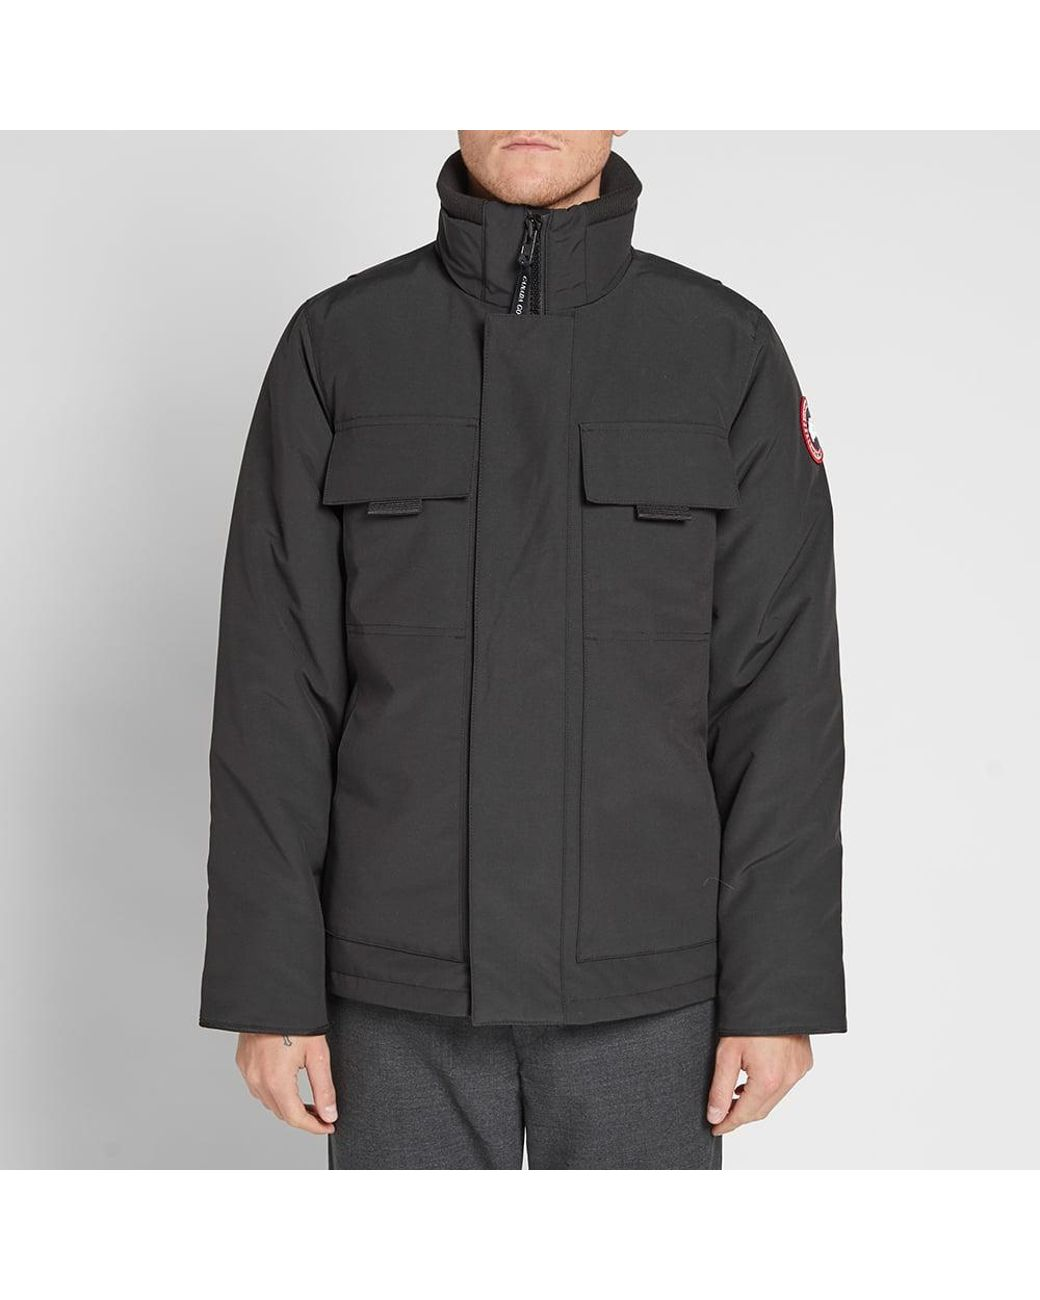 ce17bc518255e Canada Goose Forester Jacket in Black for Men - Lyst